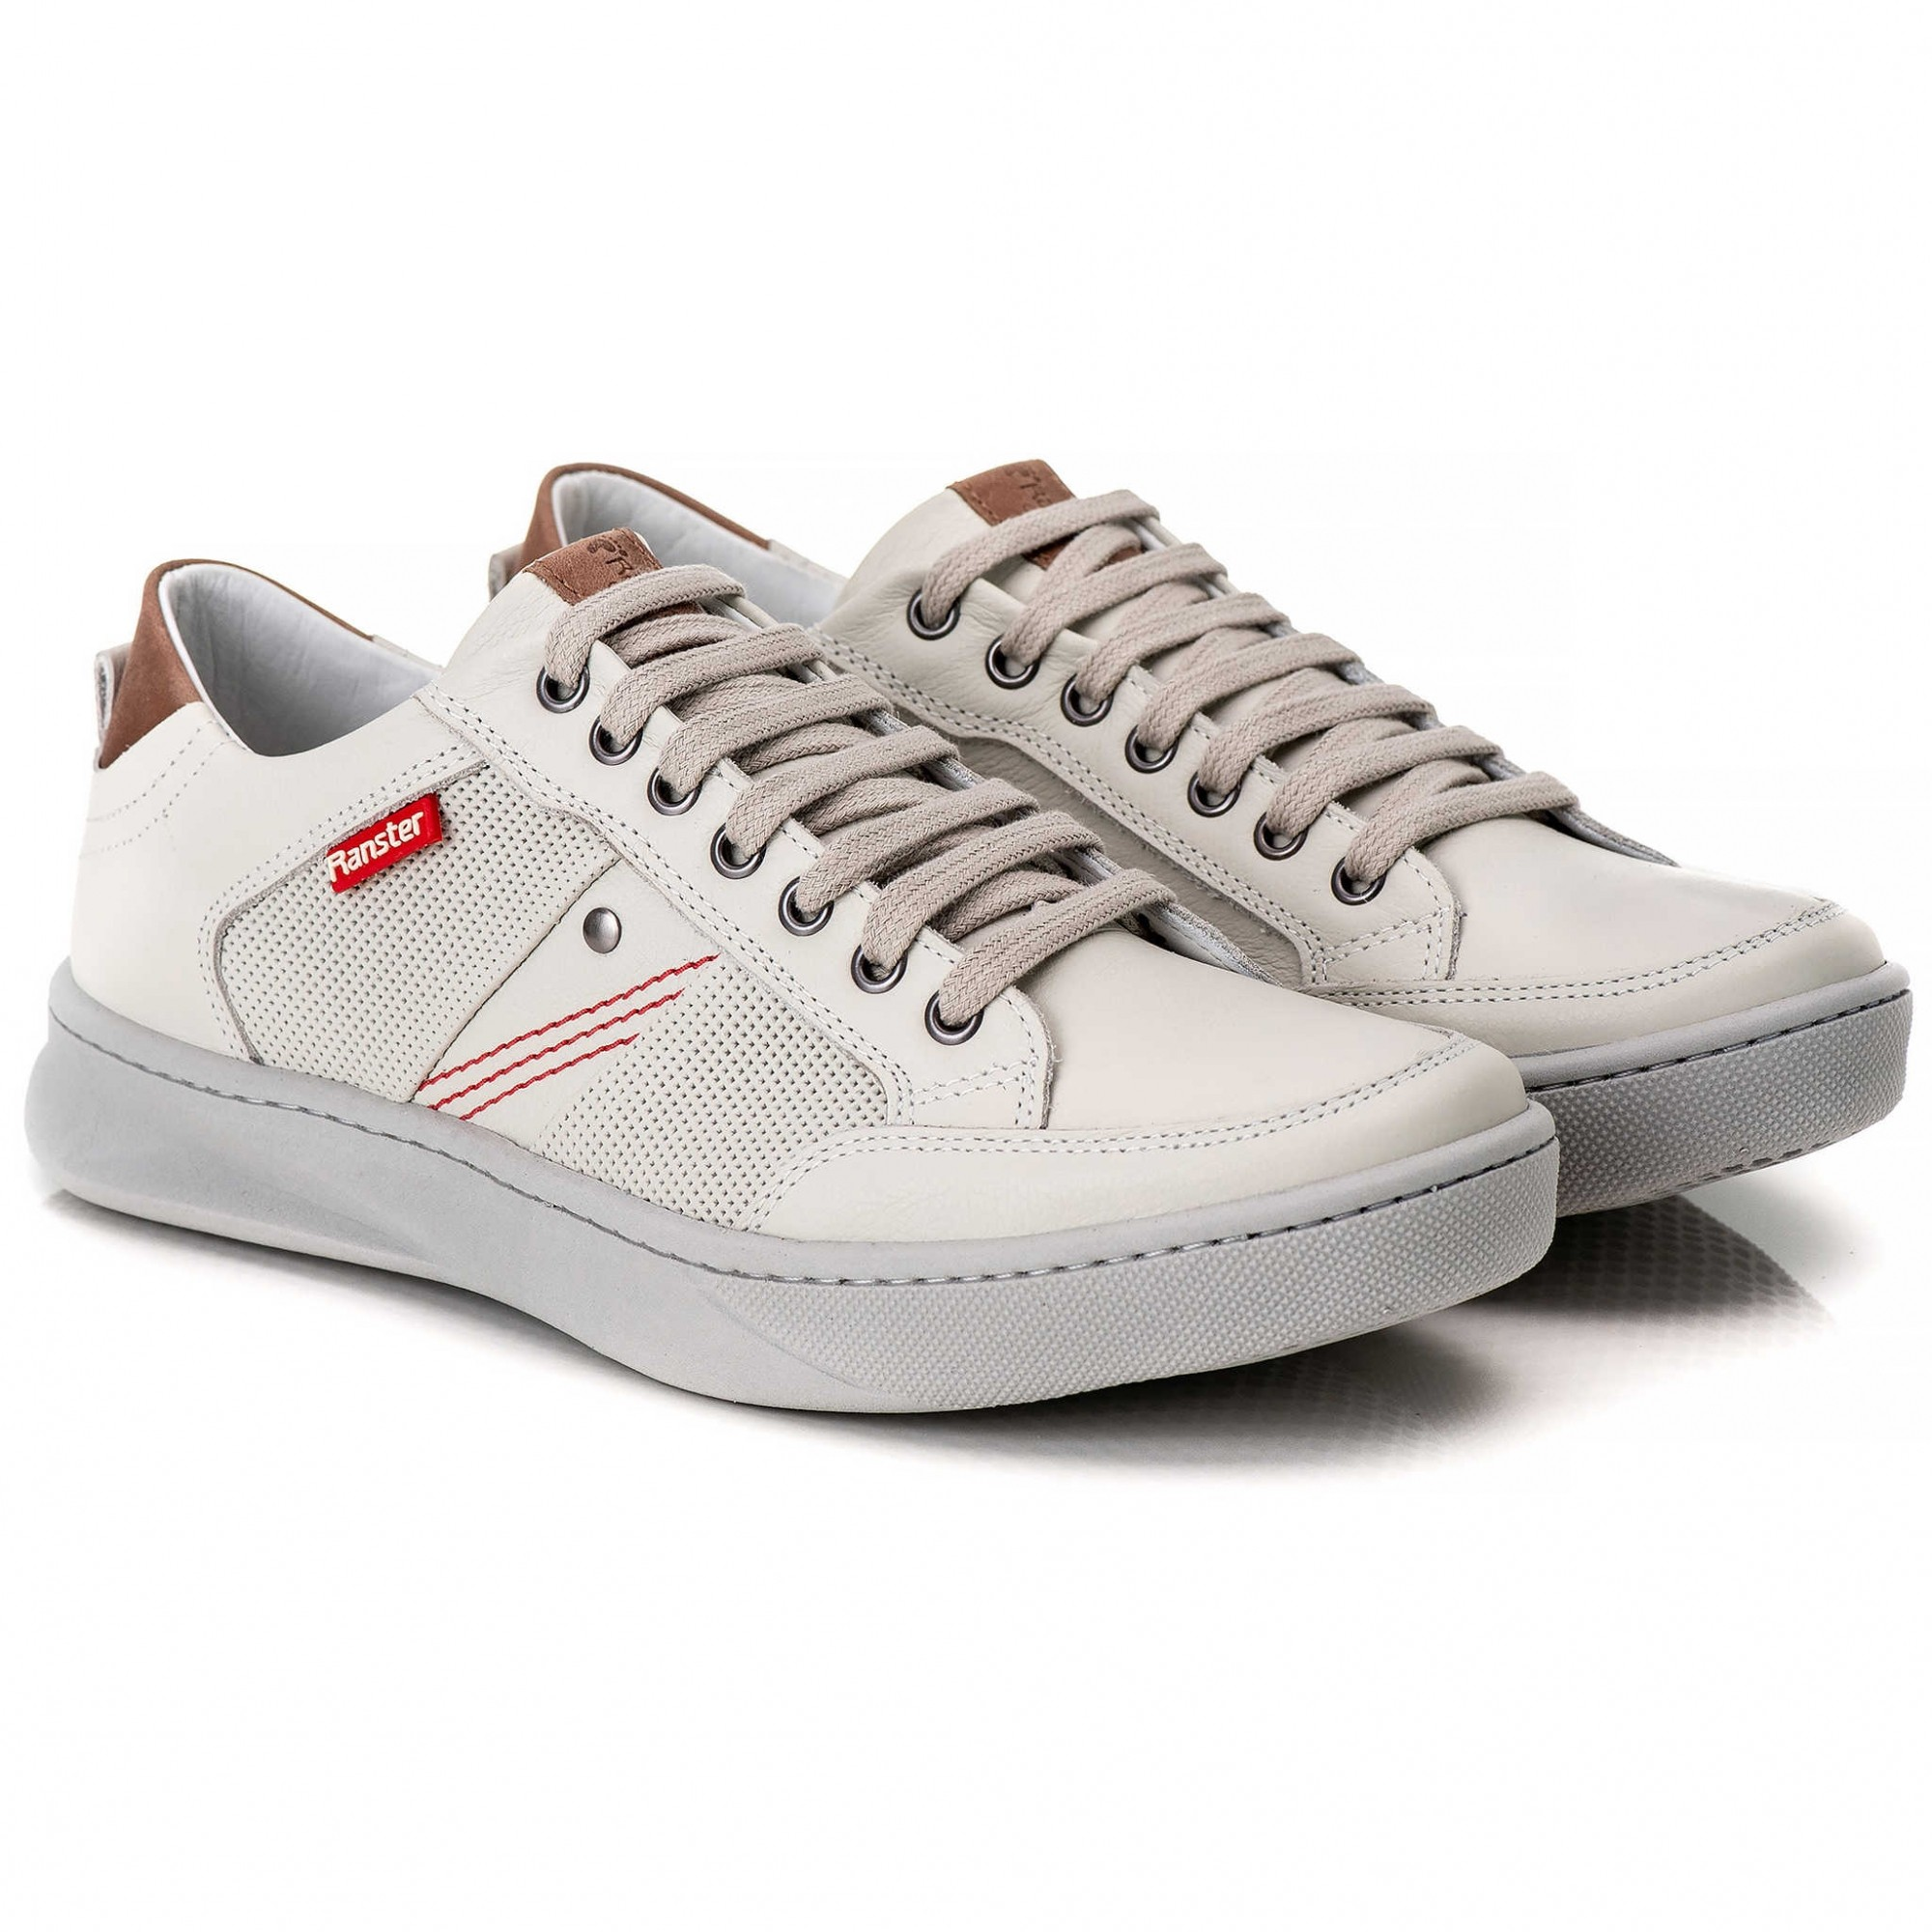 Sapatênis Masculino Coura Legítimo Off White Ranster Comfort - 3020